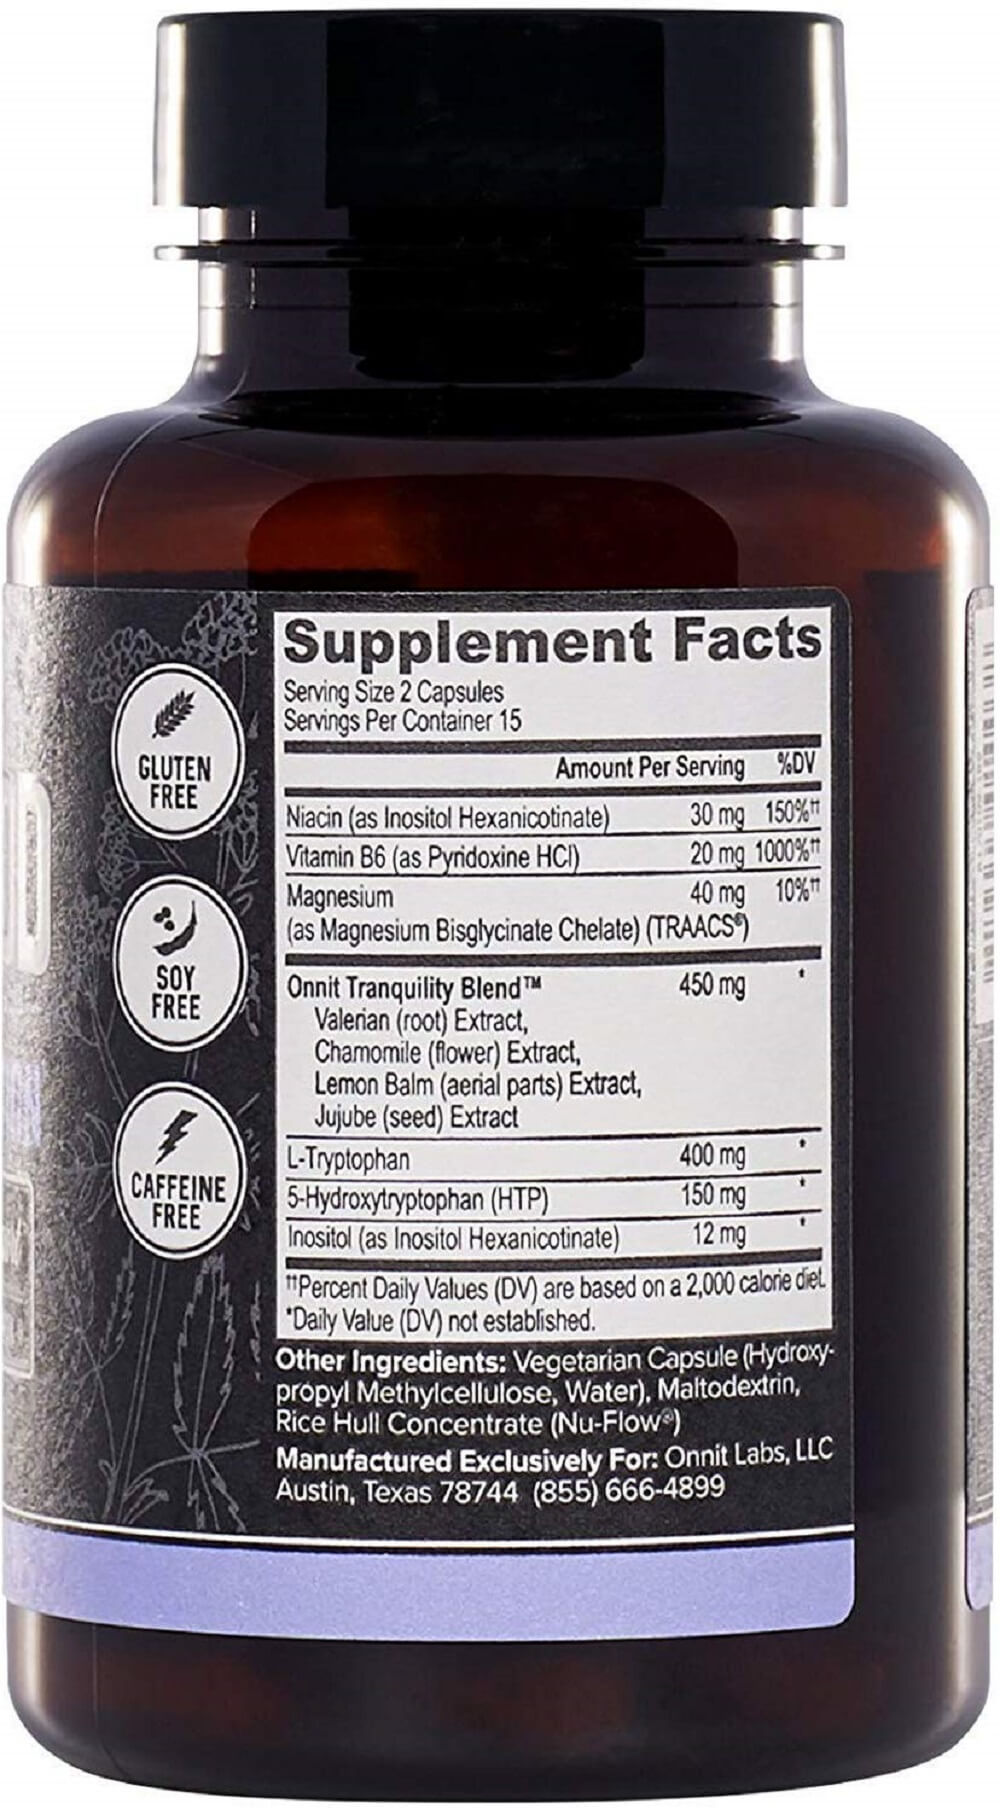 Onnit New Mood Review Ingredients